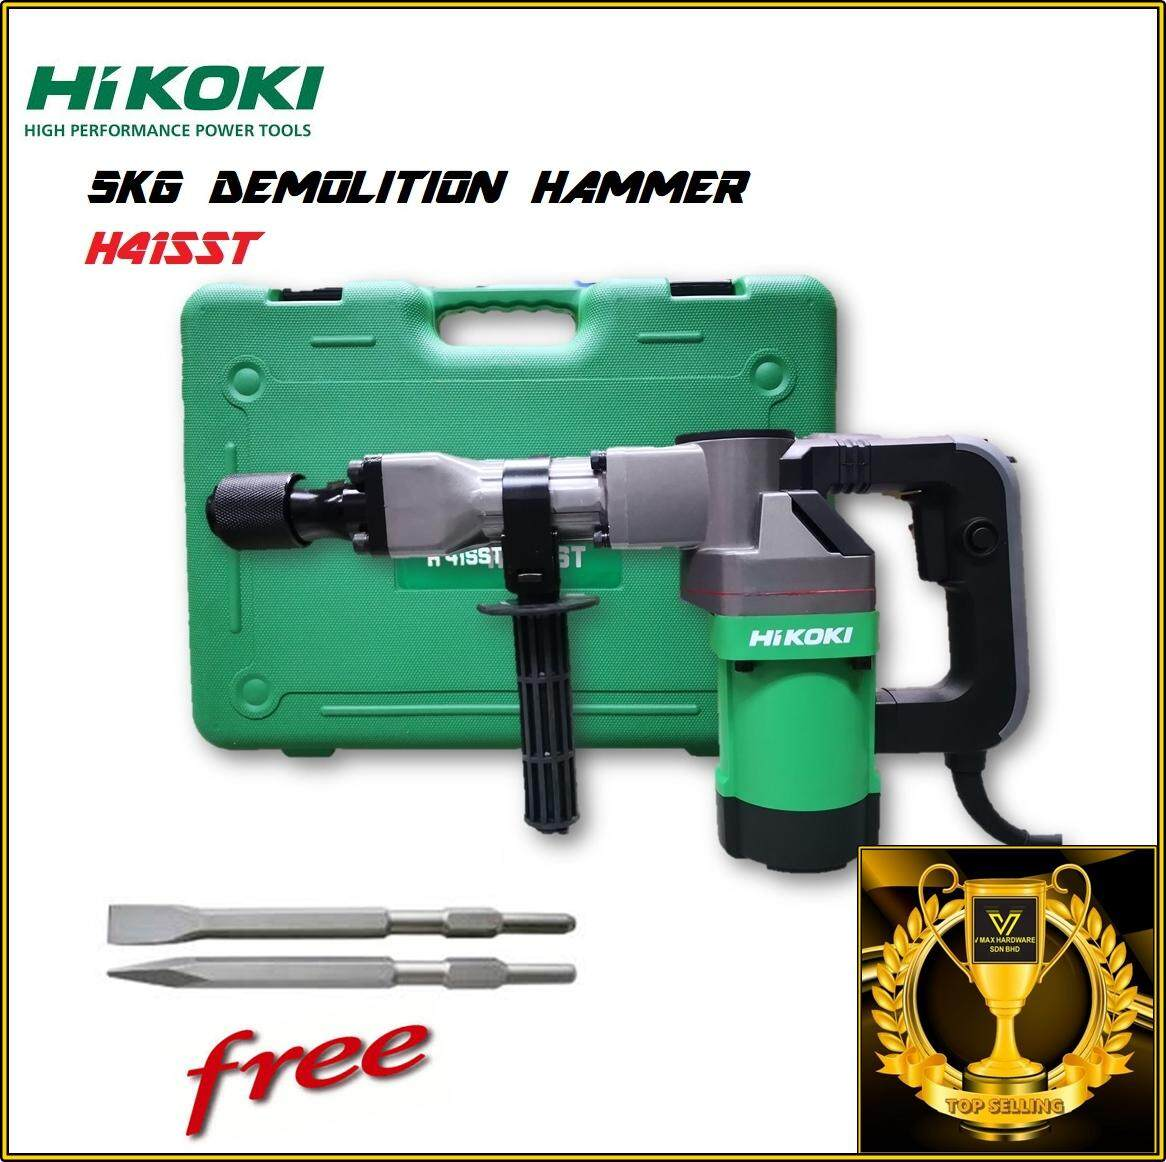 HITACHI HIKOKI H41SST 1010W 5KG DEMOLITION HAMMER BUNDLE WITH CHISELS AND GREASE